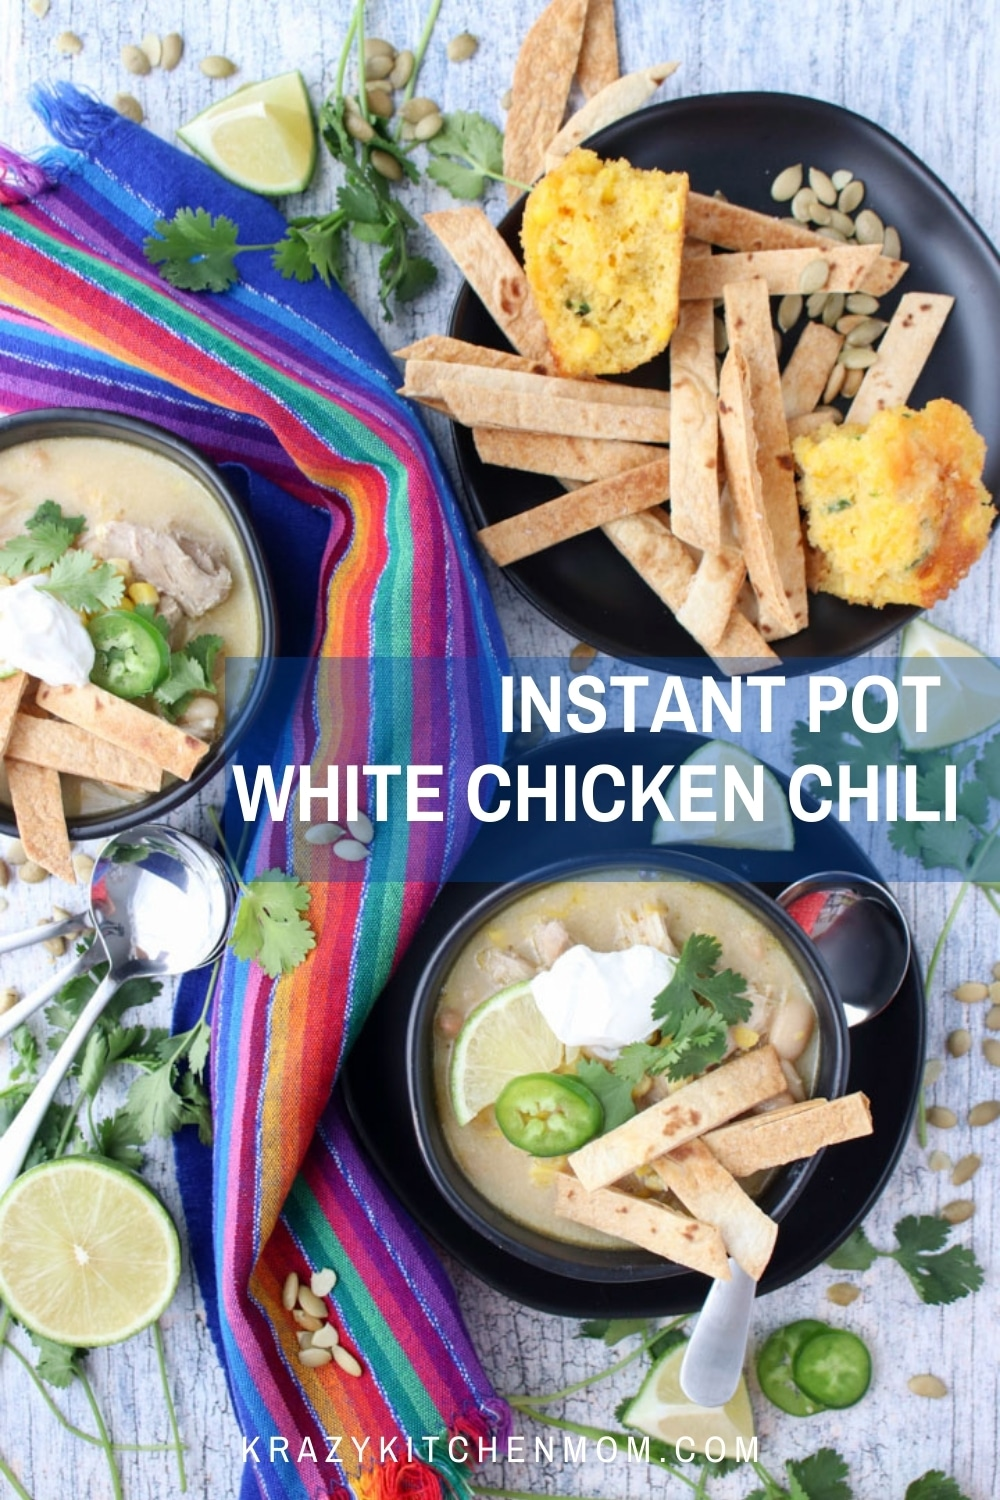 Cream white chicken chili is a great alternative to a red chili sauce. It's loaded with Tex-Mex flavors and is ready in less than 40 minutes. via @krazykitchenmom